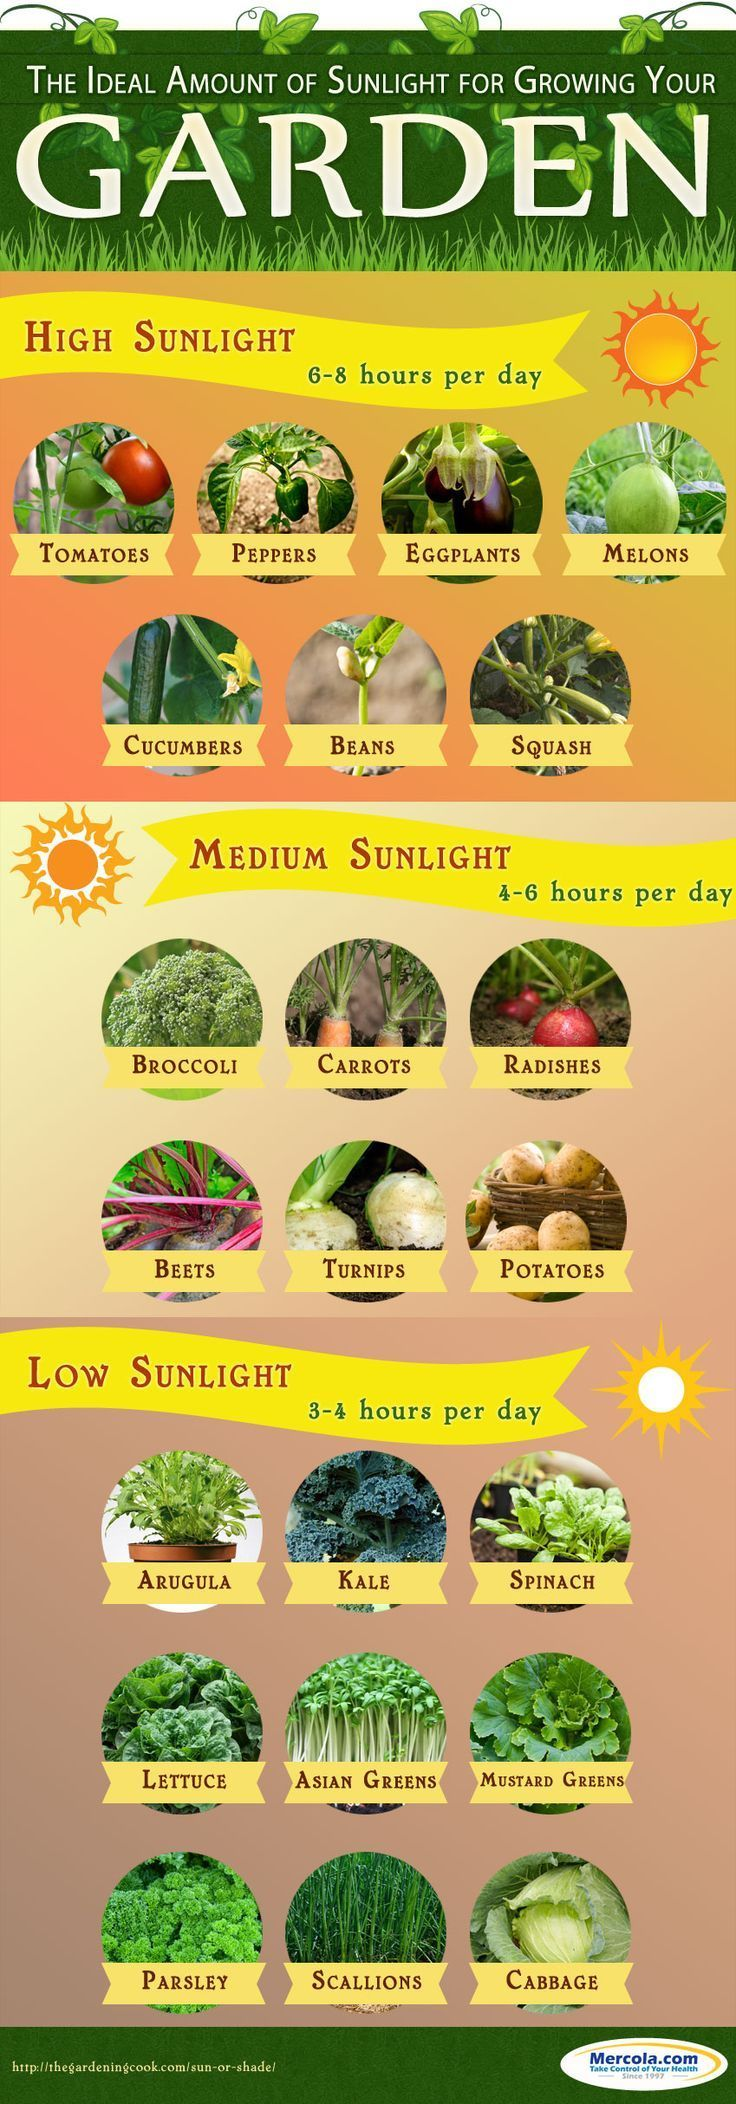 cool The Ideal Amounts of Sunlight for Growing Your Garden